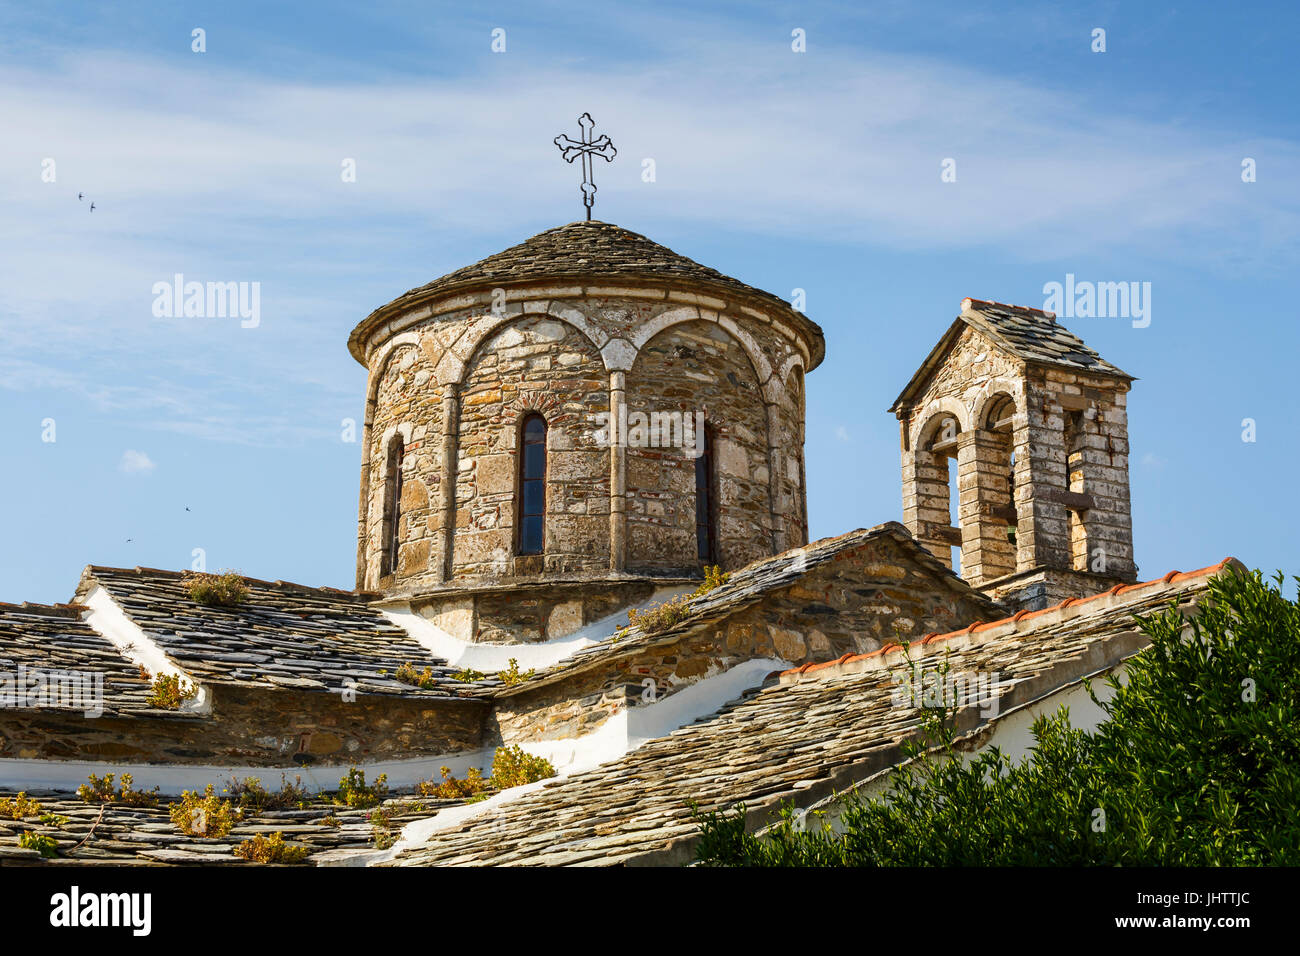 Church in the old town of Skopelos, Greece. - Stock Image